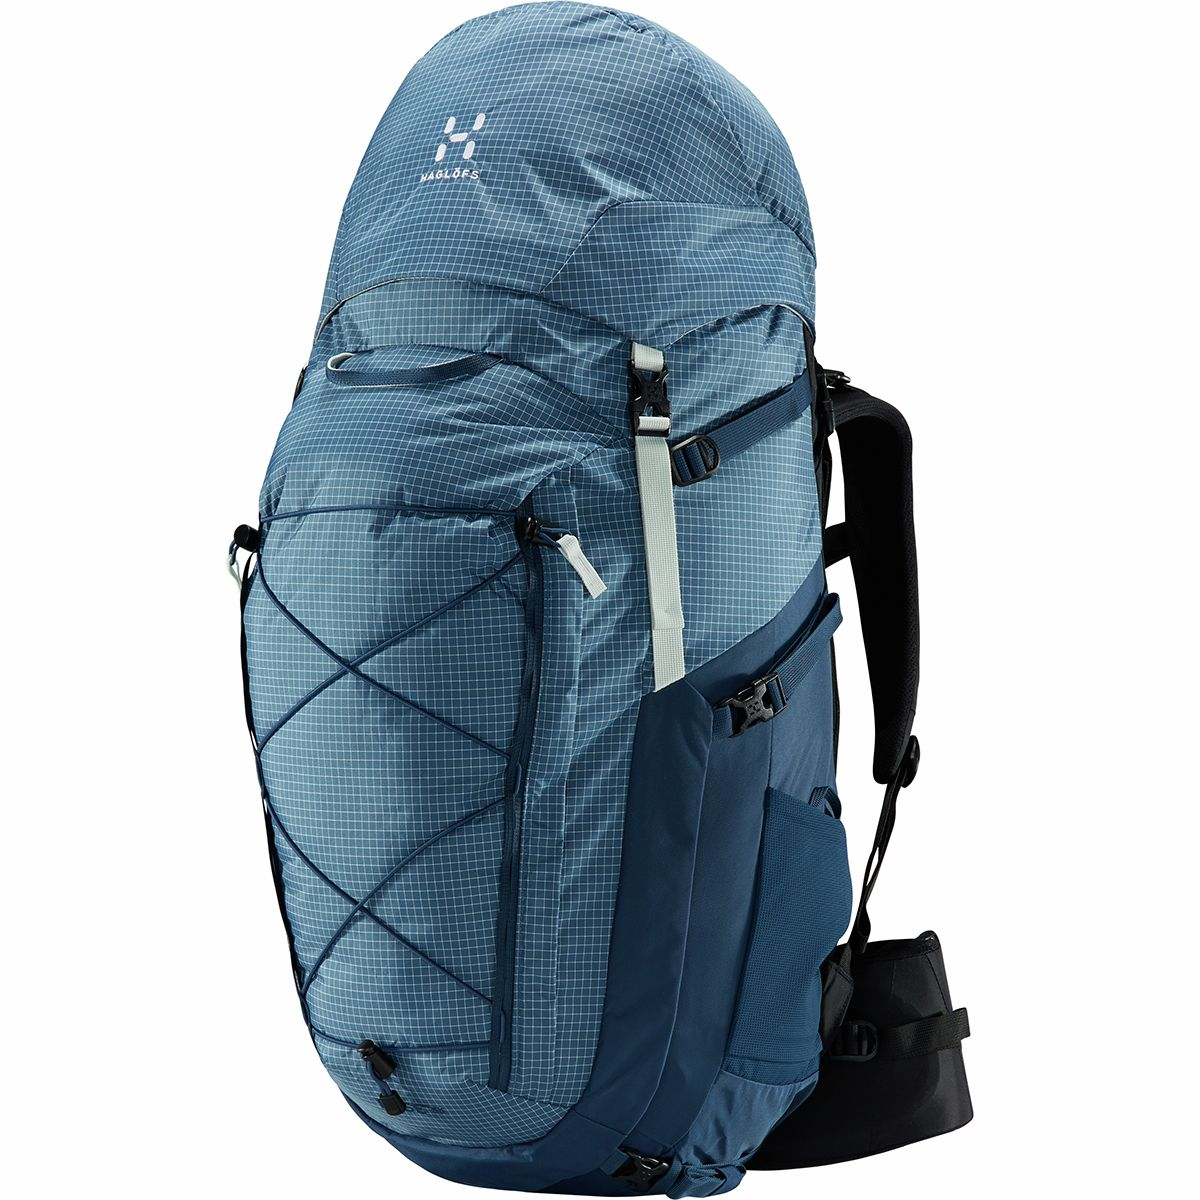 bf2176c1b The Best Backpacks for 2019 - Trailspace